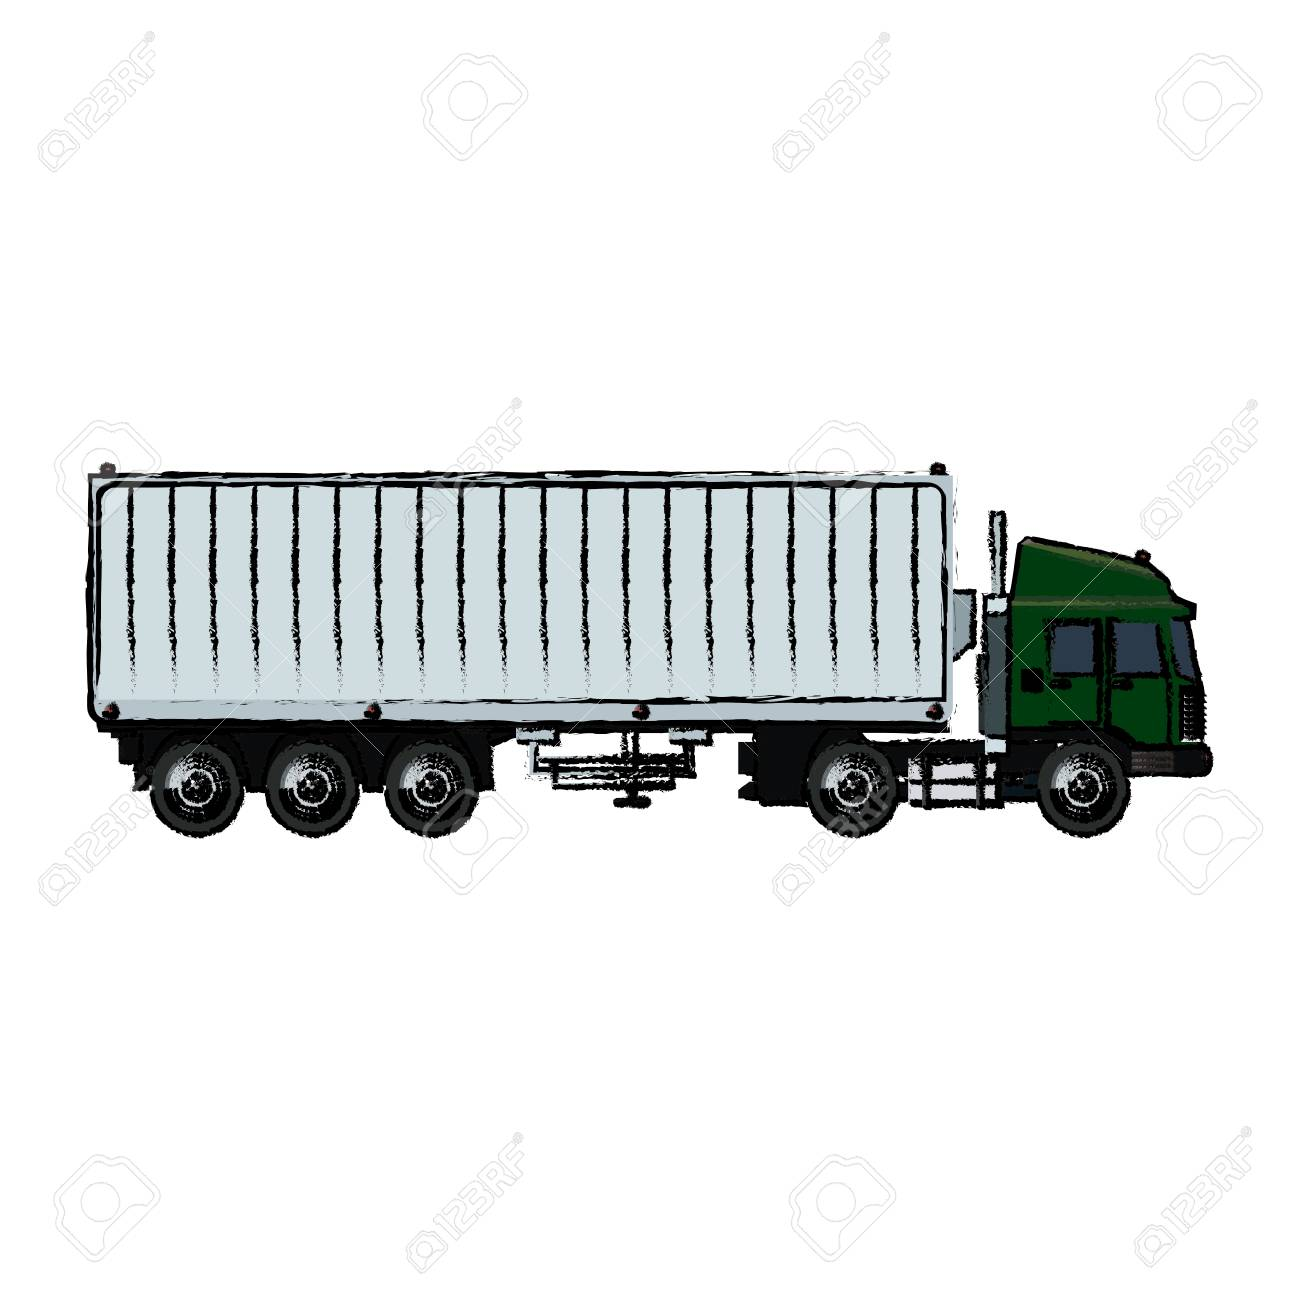 1300x1300 Drawing Truck Container Shipping Cargo Vector Illustration Royalty